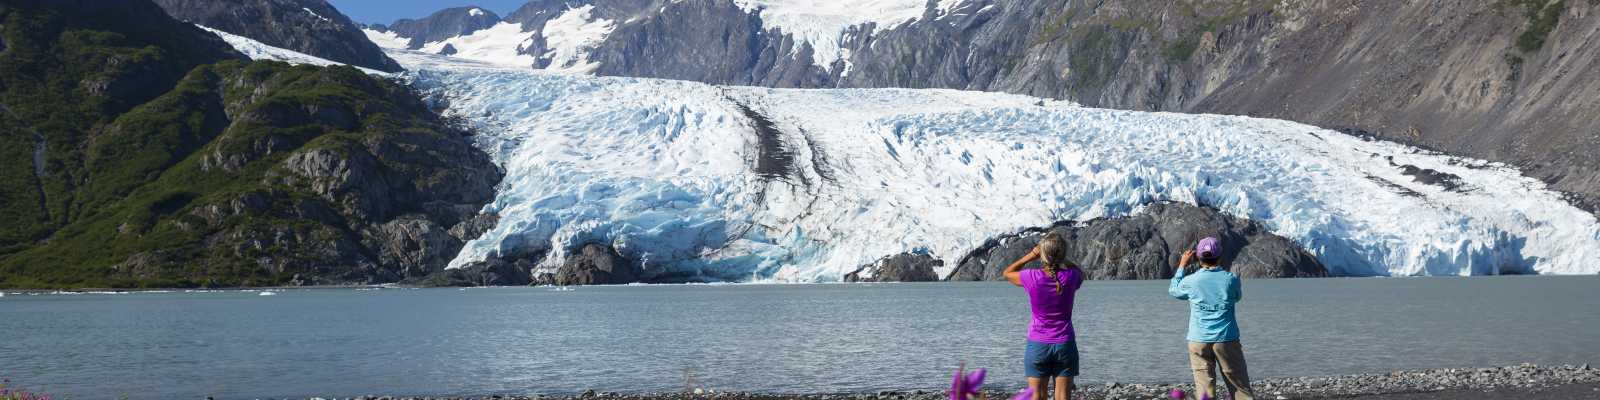 Portage Glacier view for Anchorage hikers